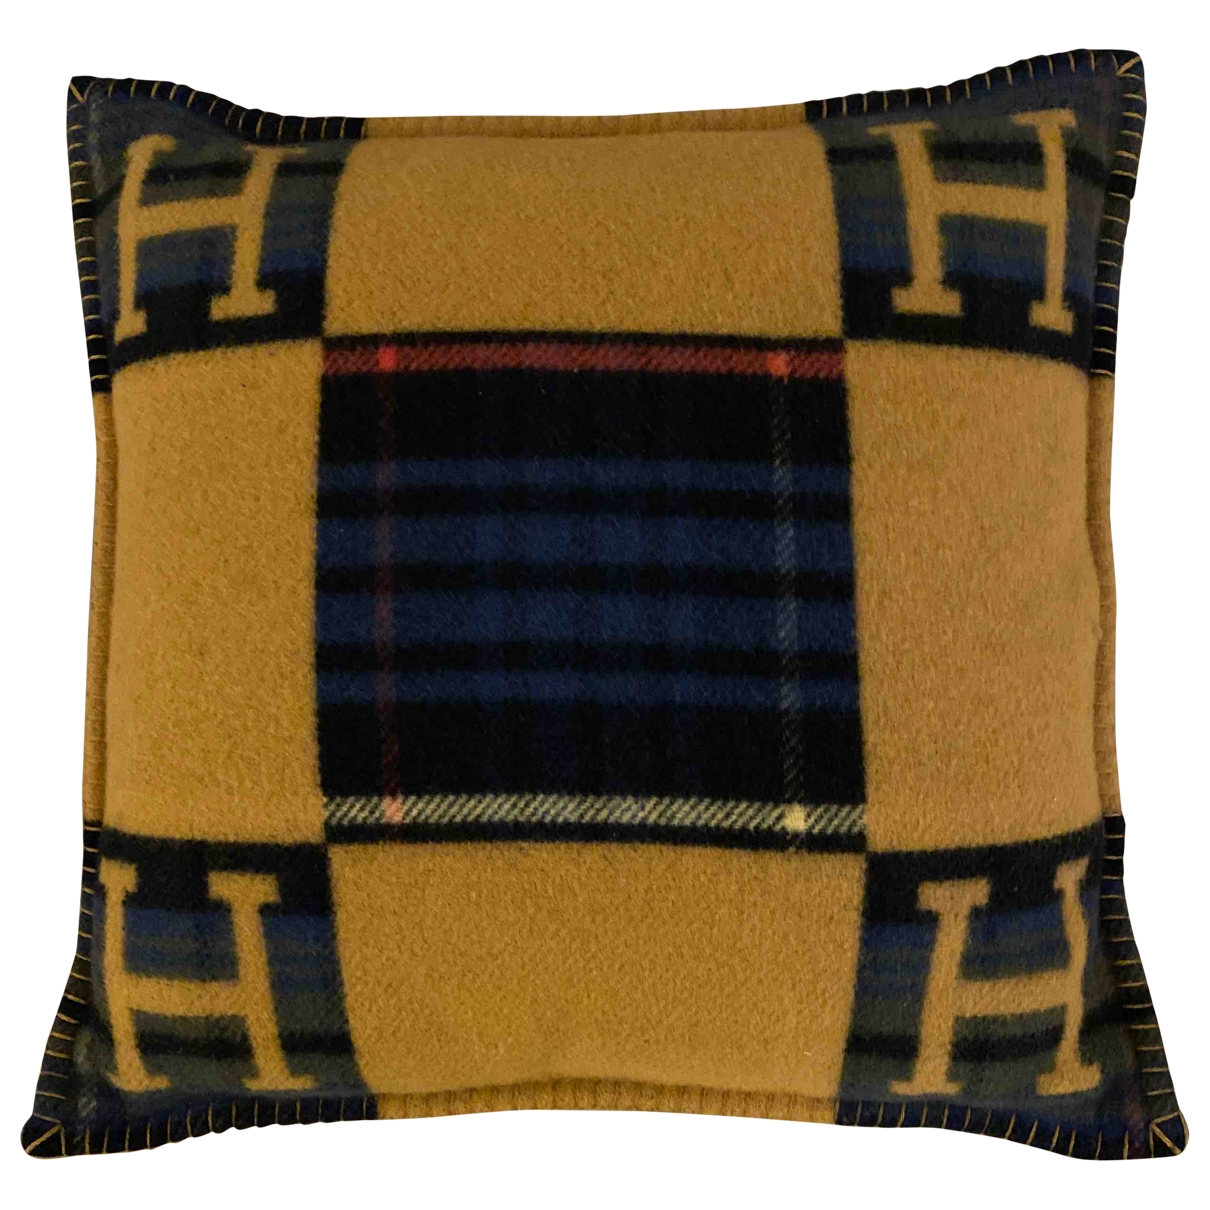 Hermès Avalon Multicolour Cashmere Textiles for Life & Living \N